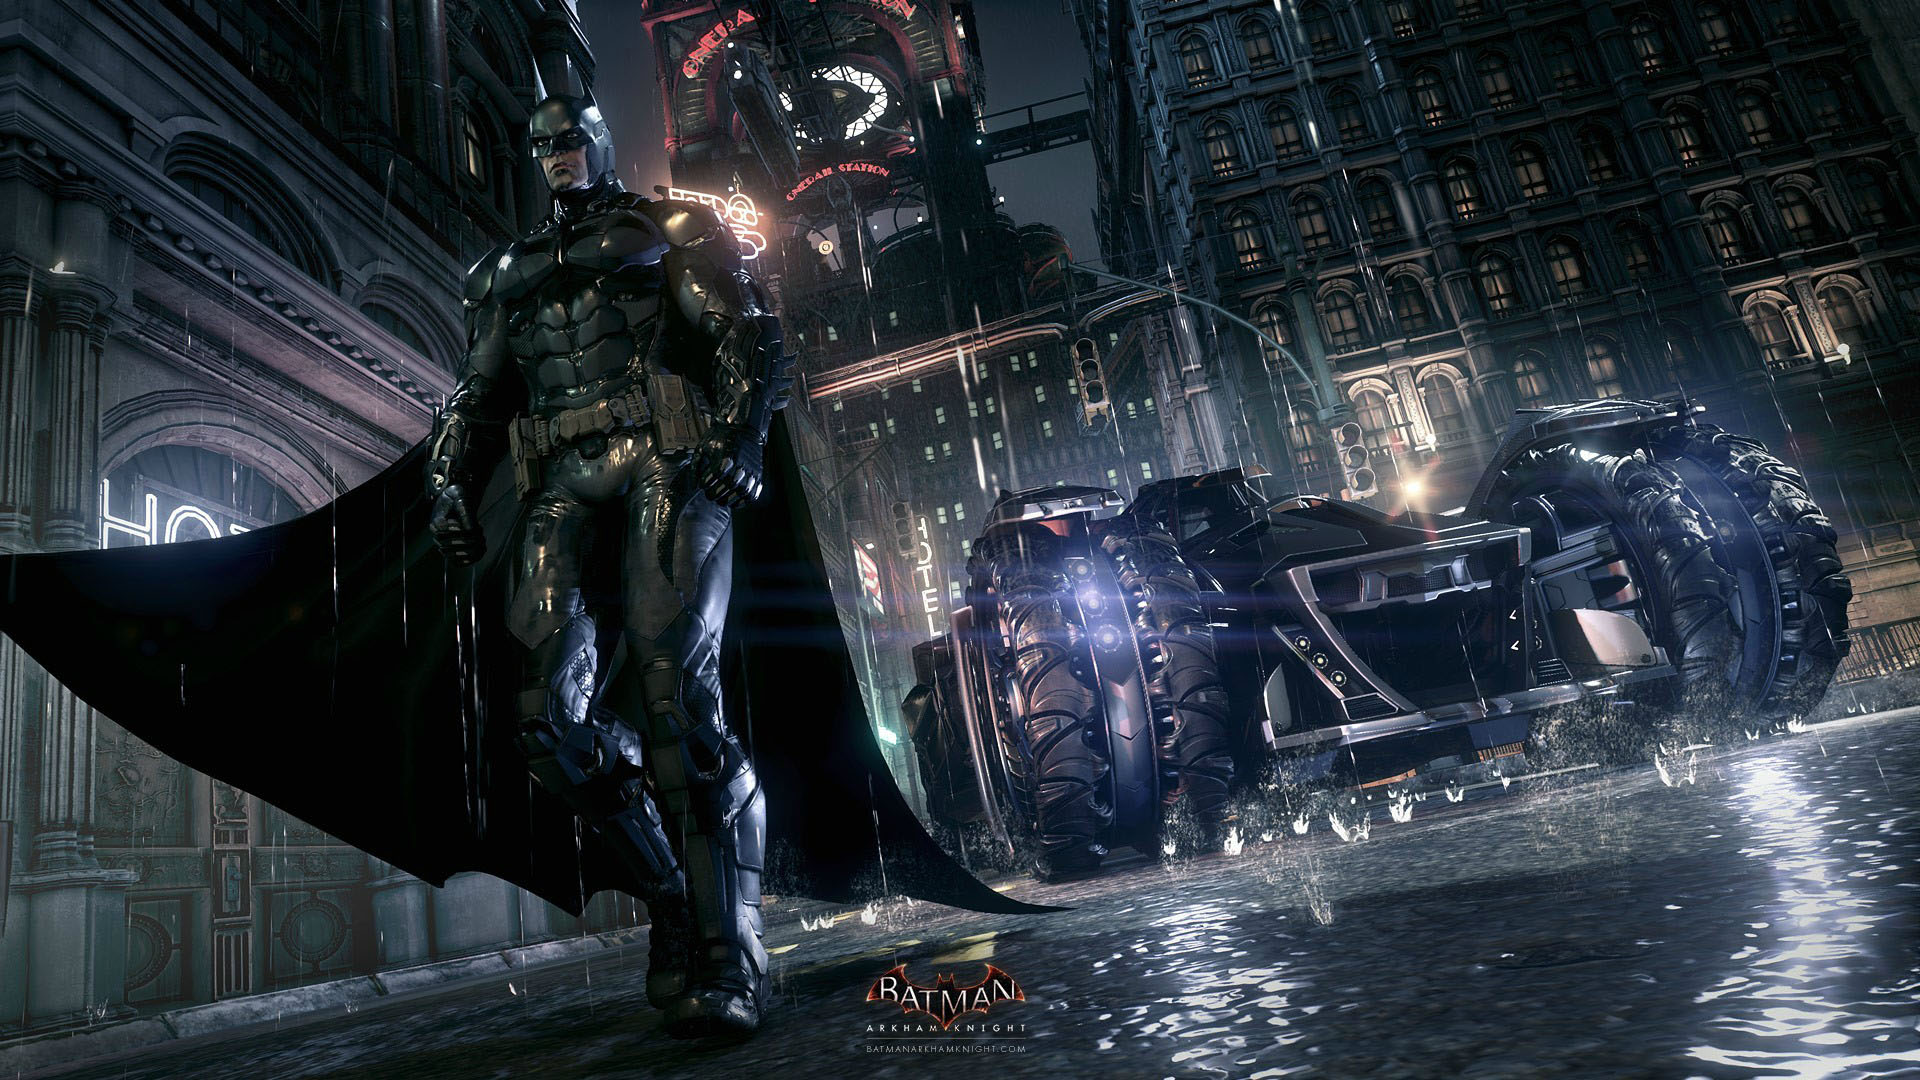 Hd Wallpapers Batman Arkham Knight Best HD Wallpapers   ImgHD 1920x1080